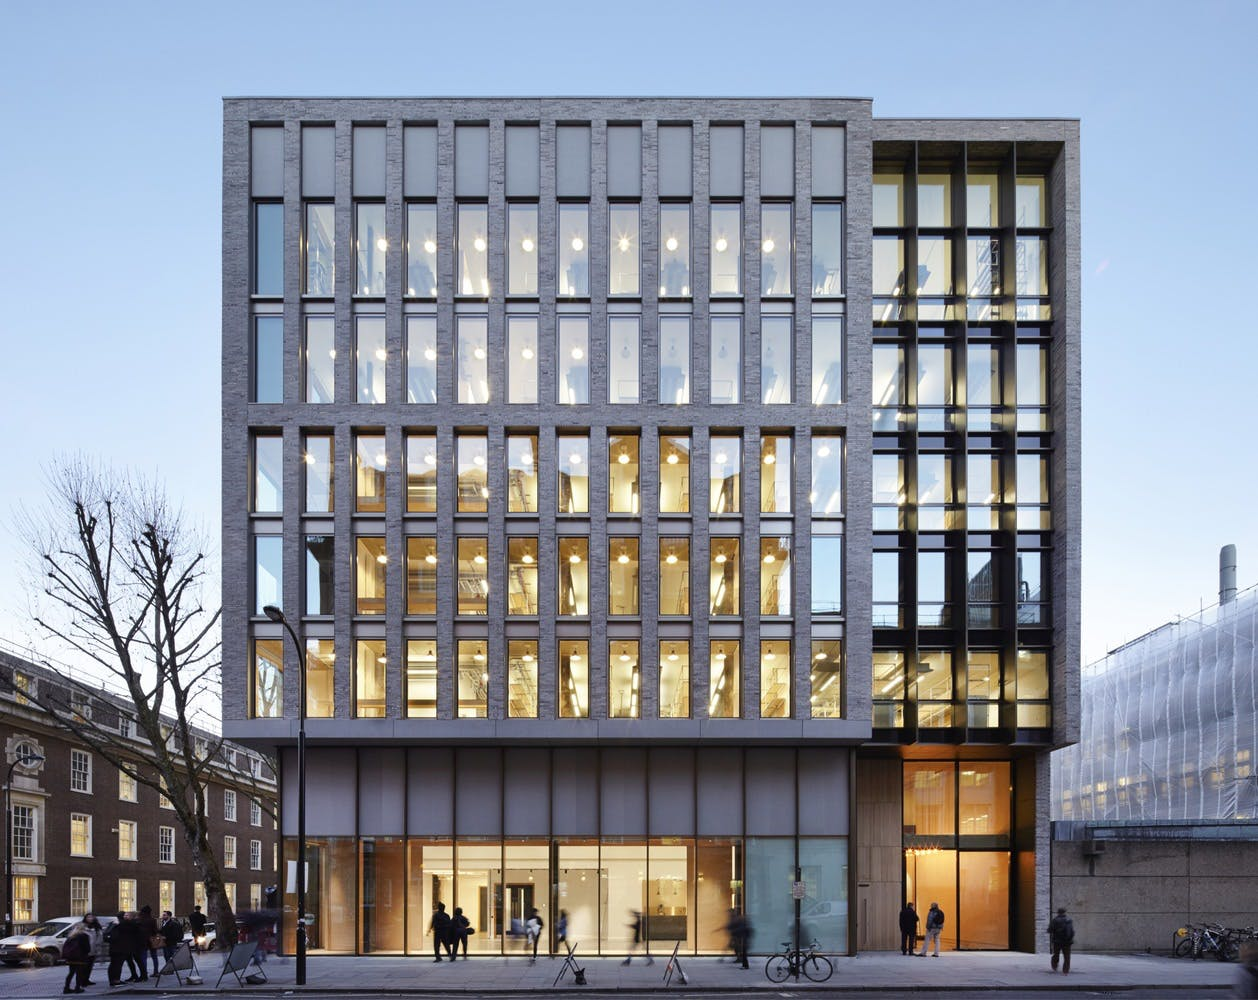 bartlett voted best uk architecture school for 15th year by